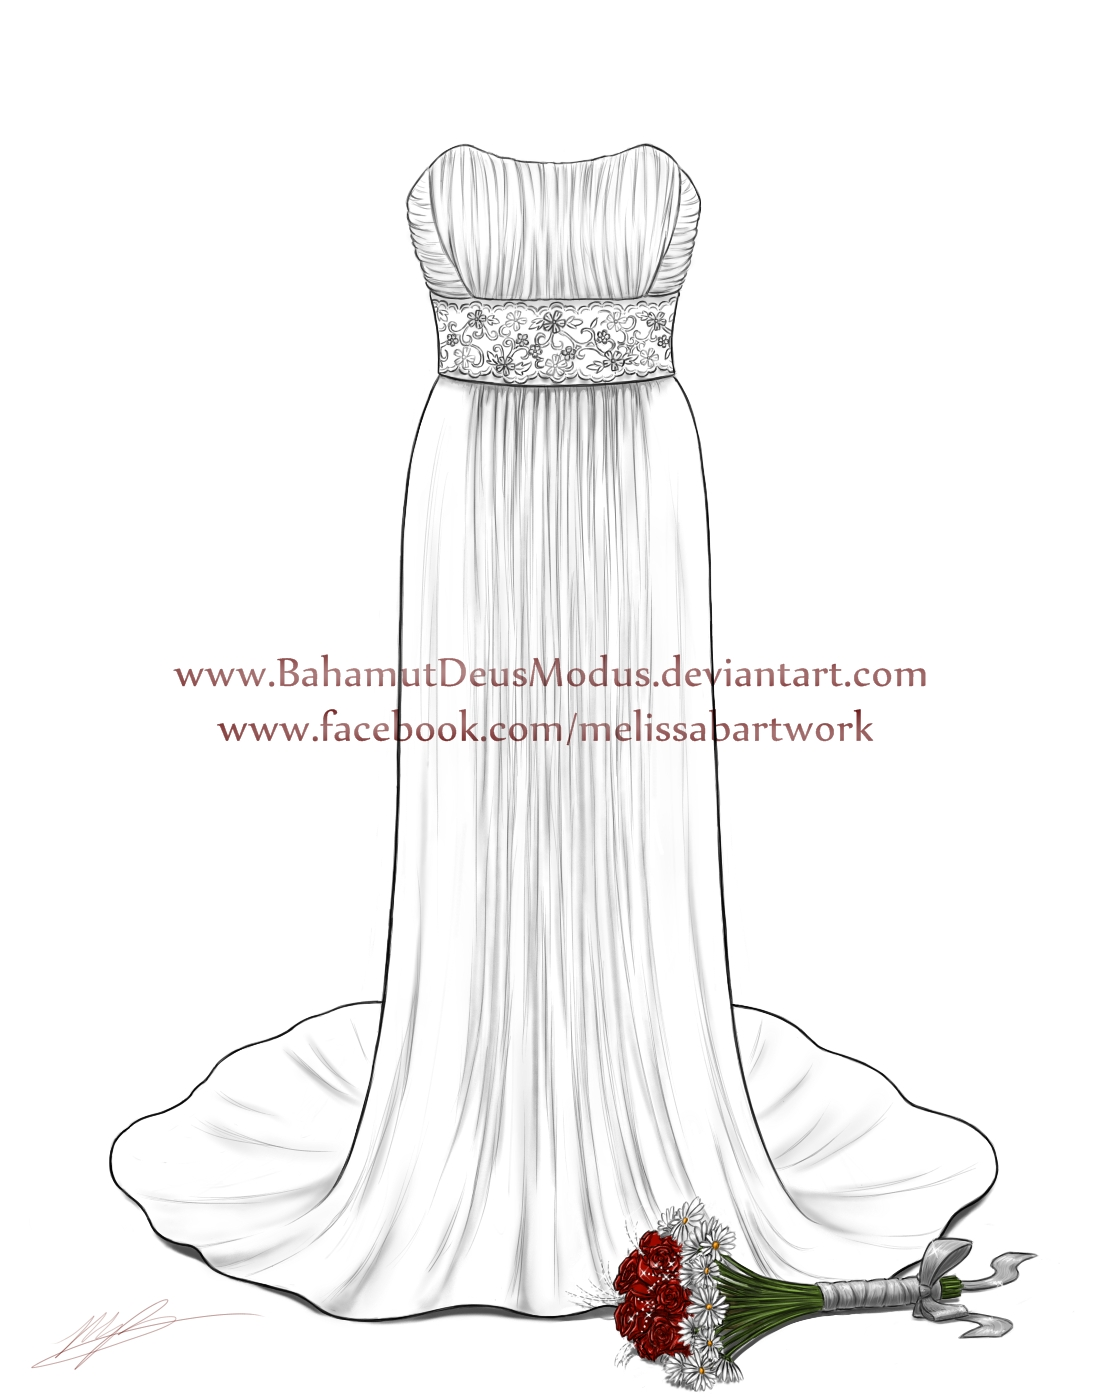 Wedding Dress Drawing, Brittany\'s by BahamutDeusModus on DeviantArt